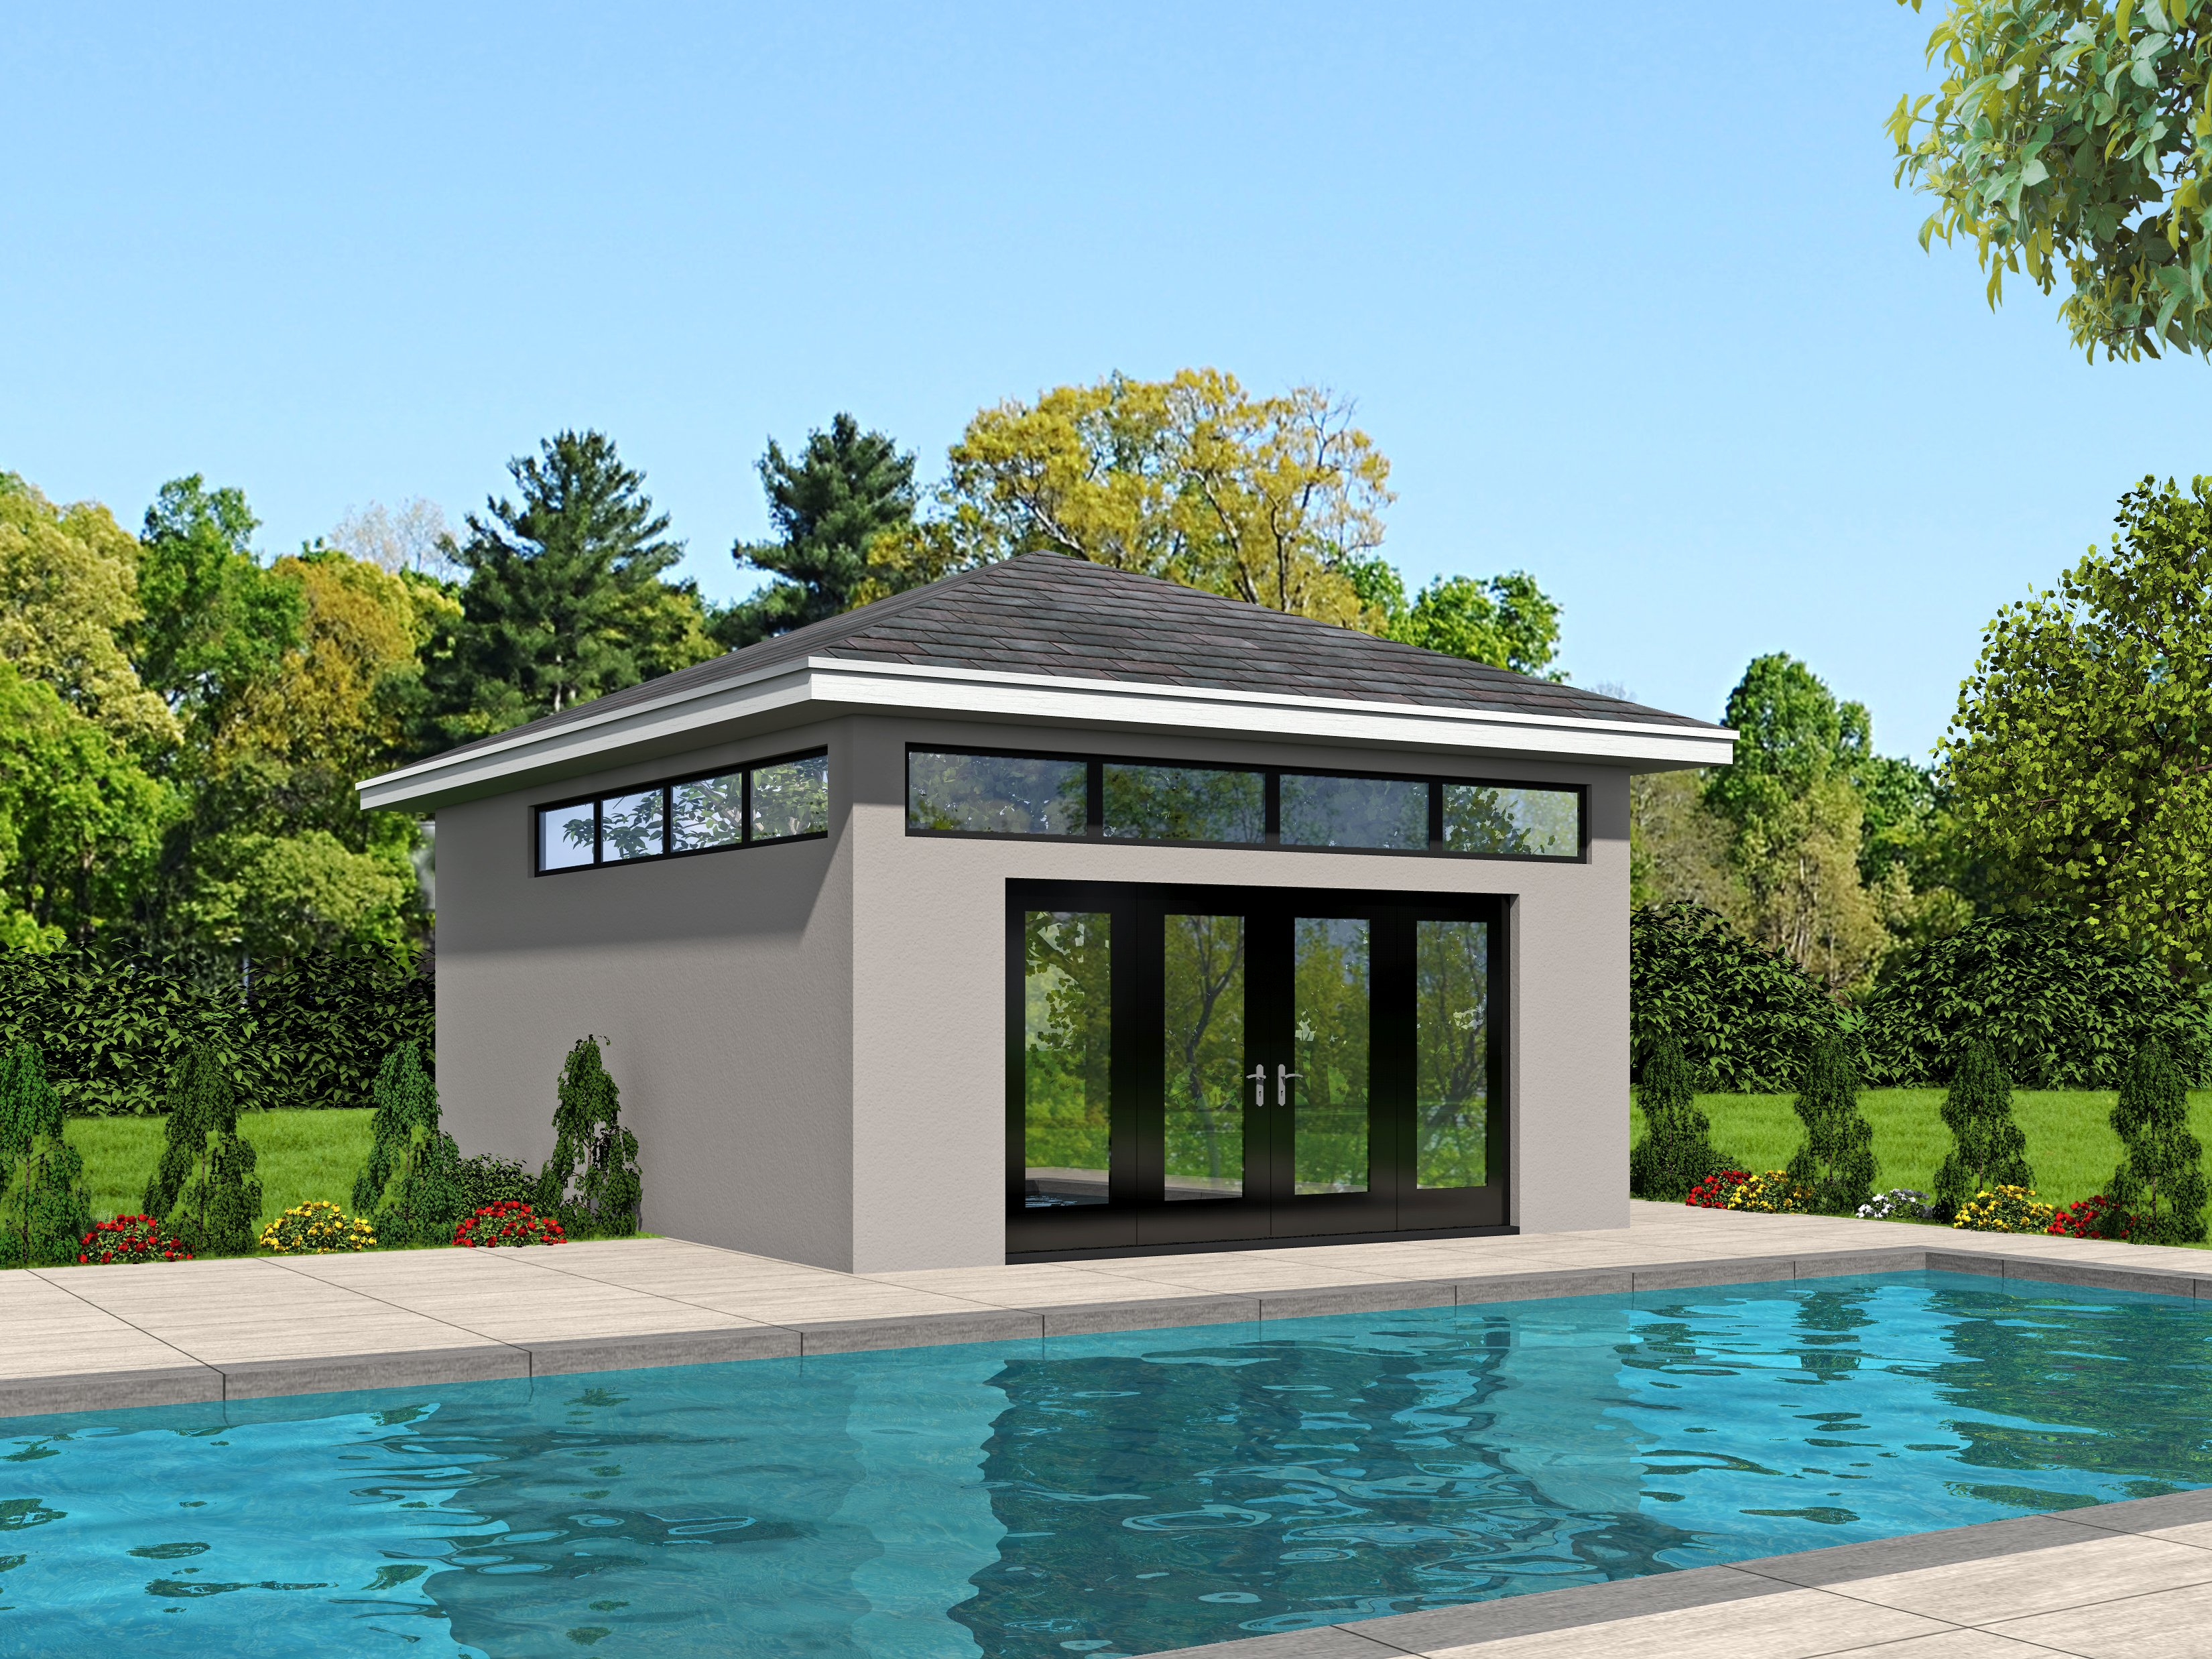 Pool house plans house plans plus for Home plans with pools